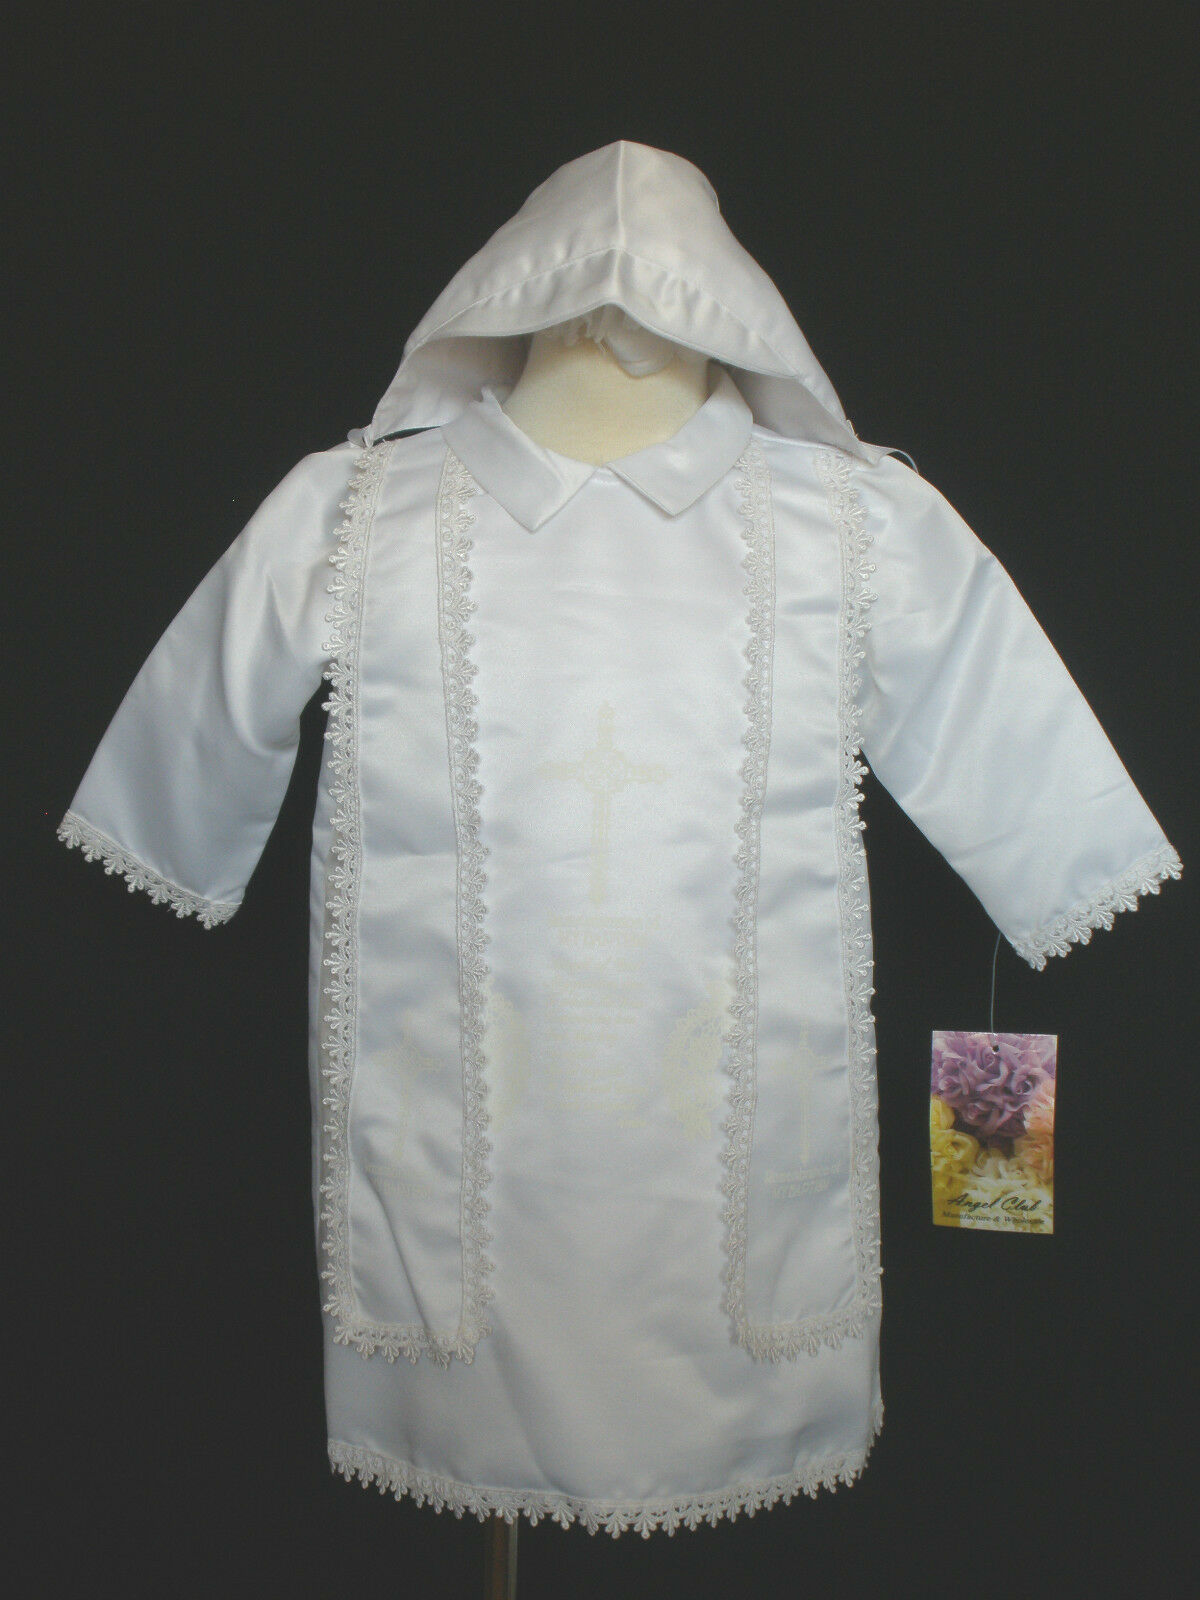 Baby Boy Toddler Christening Baptism Gown White Size Born to 24 ...